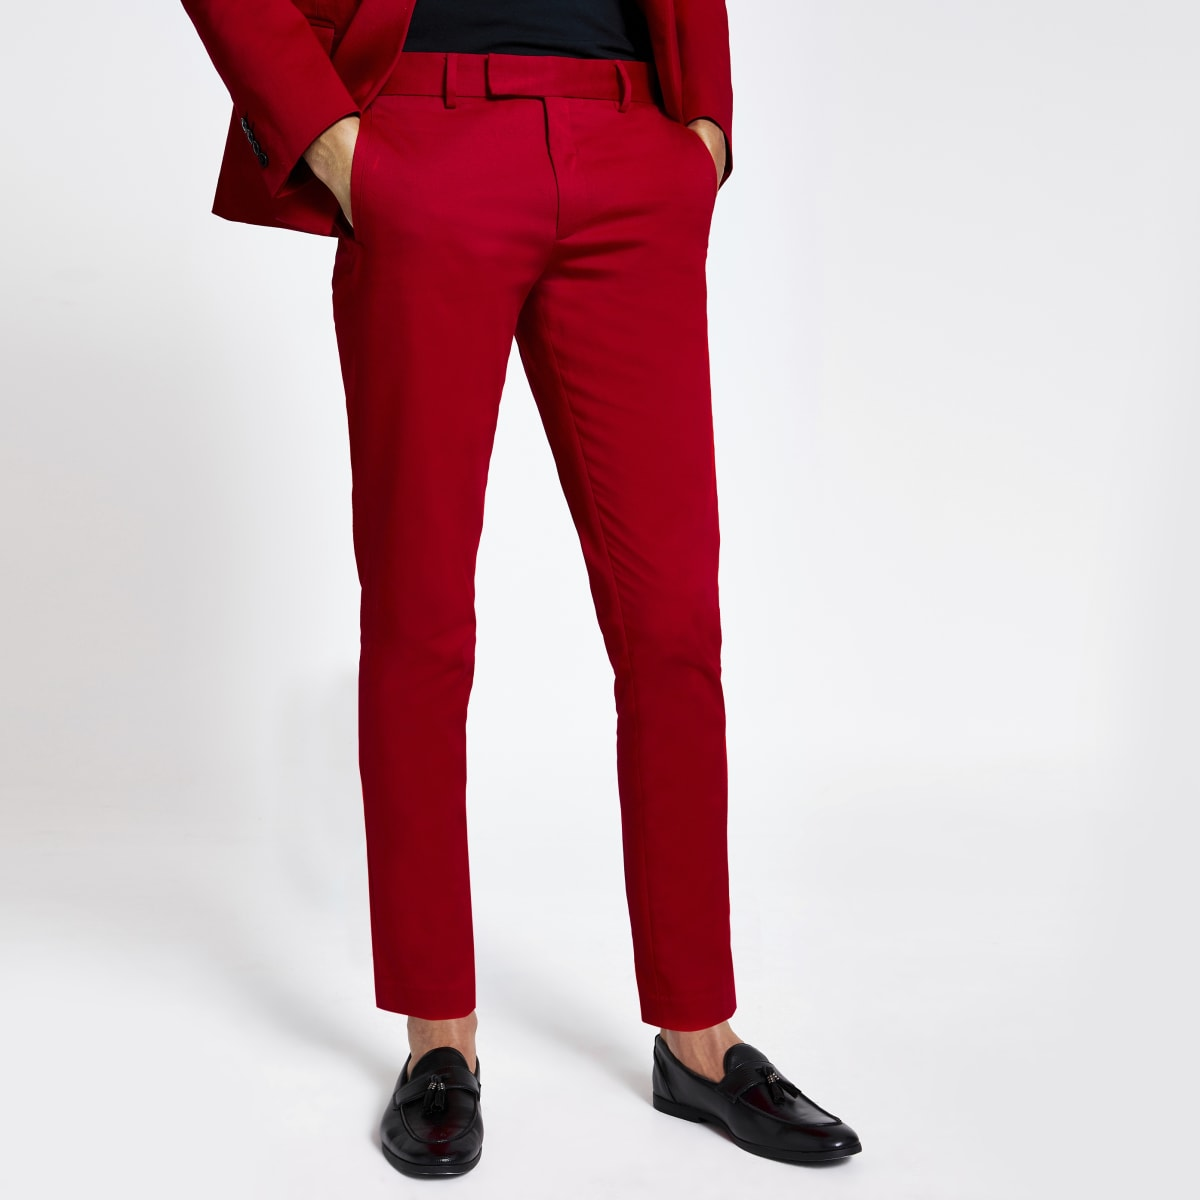 Red stretch skinny suit trousers